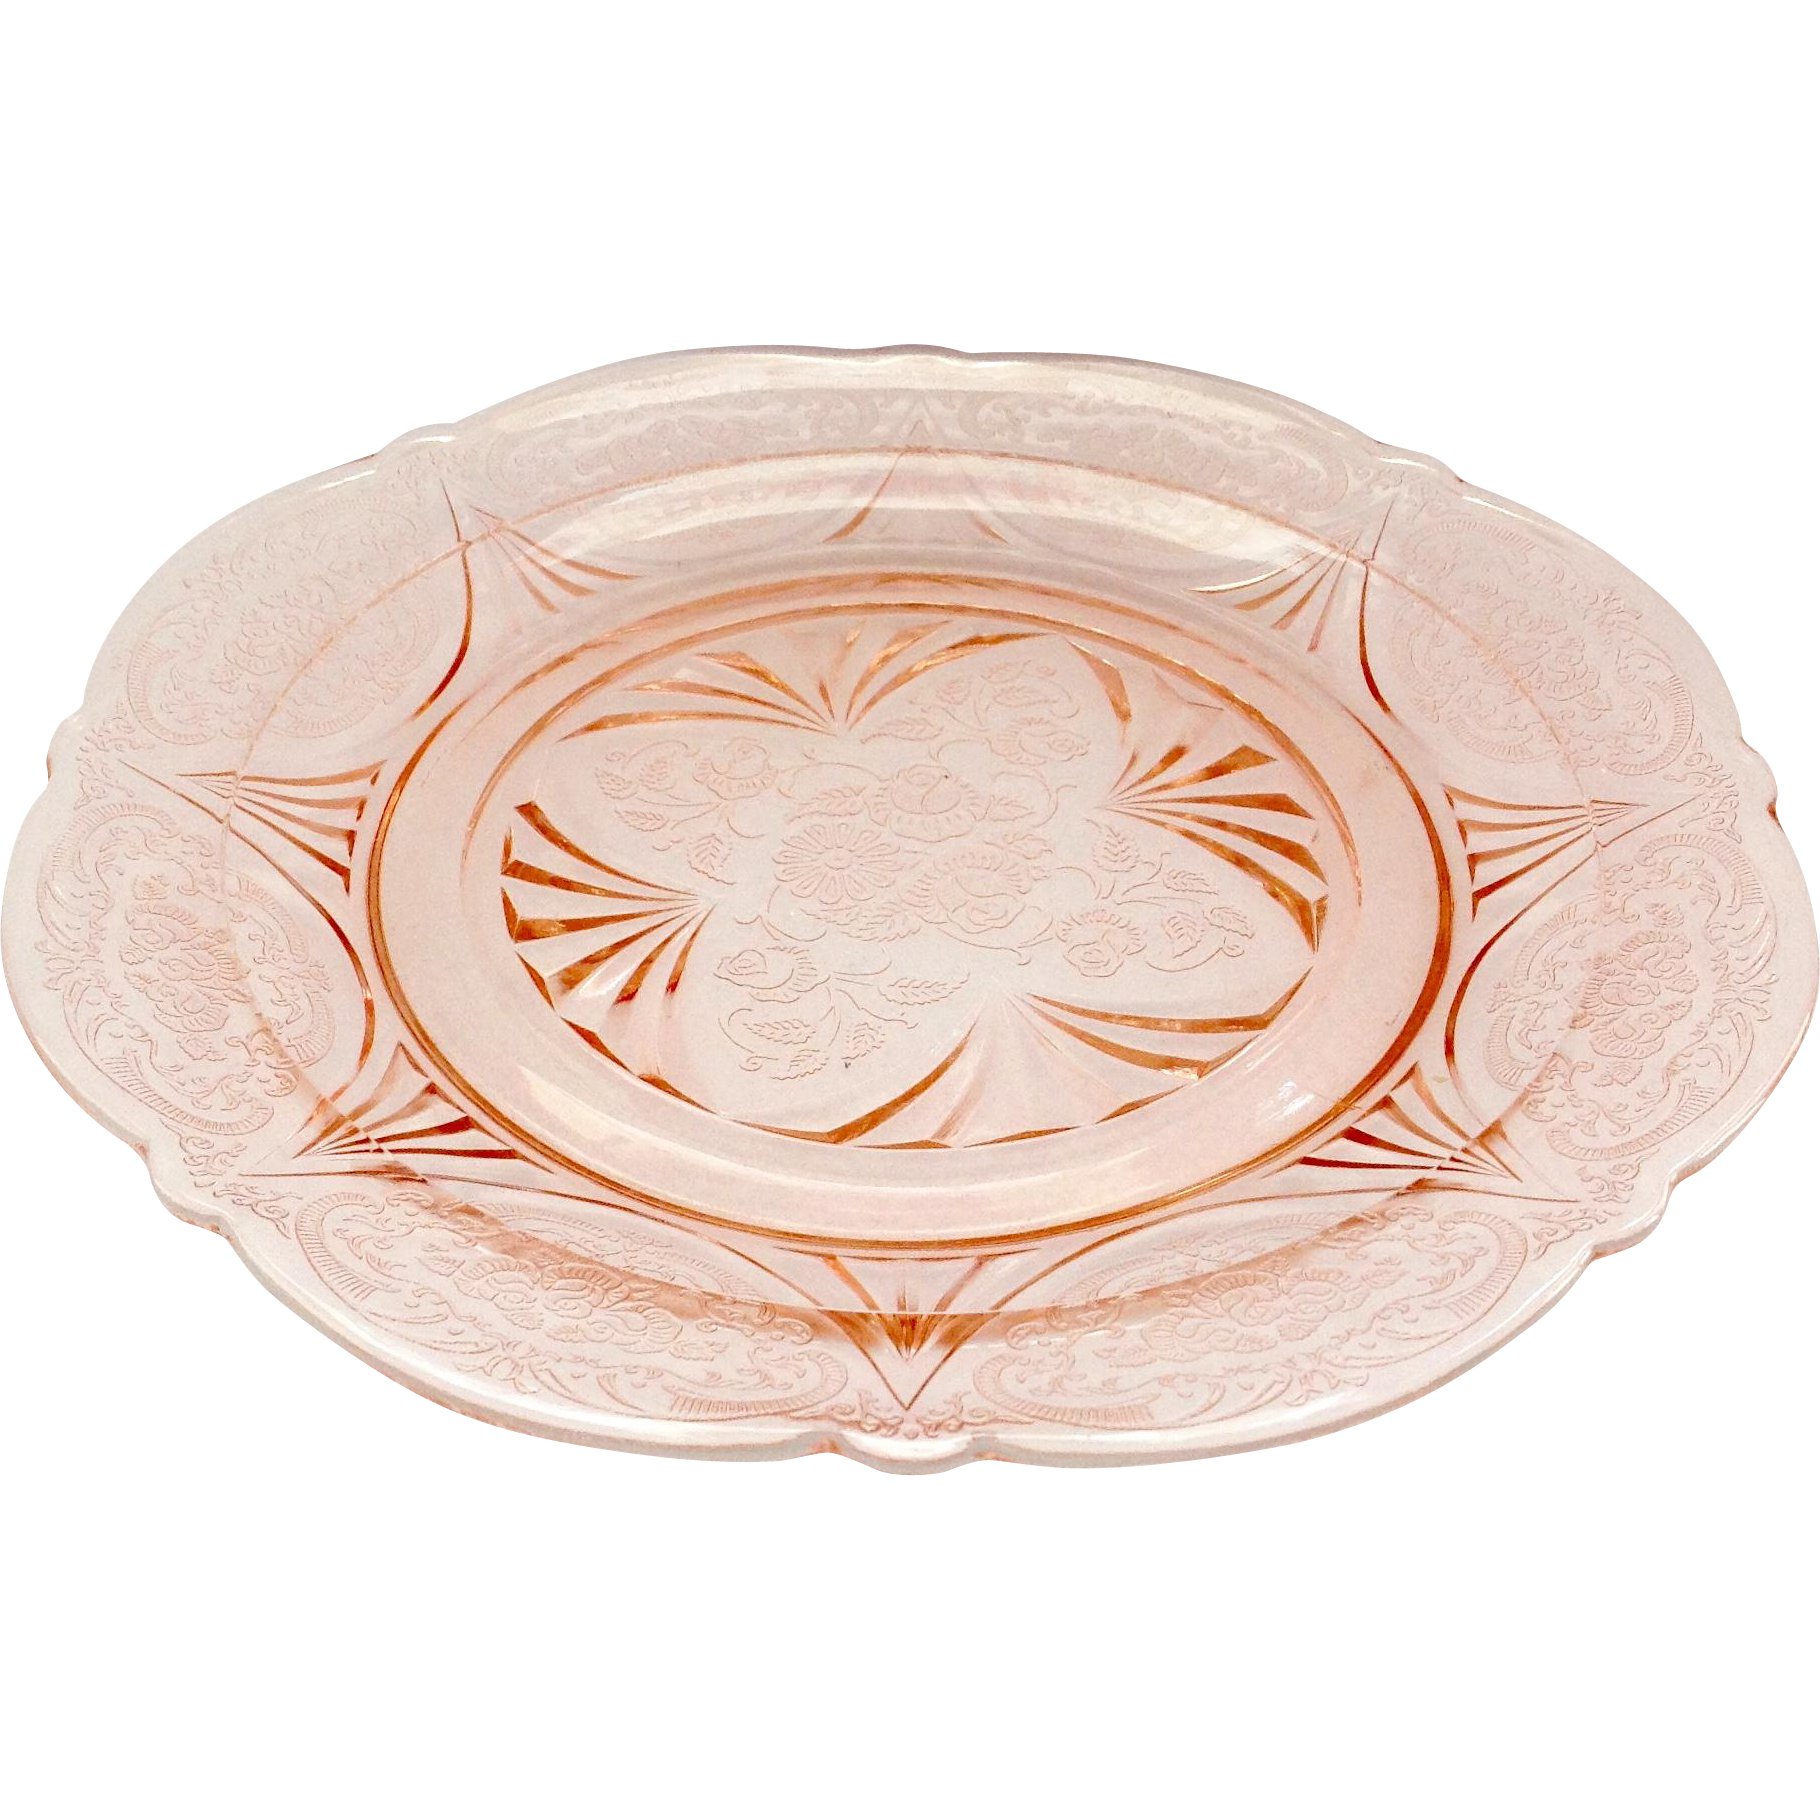 Hazel Atlas Royal Lace Pink Depression Glass Dinner Plate